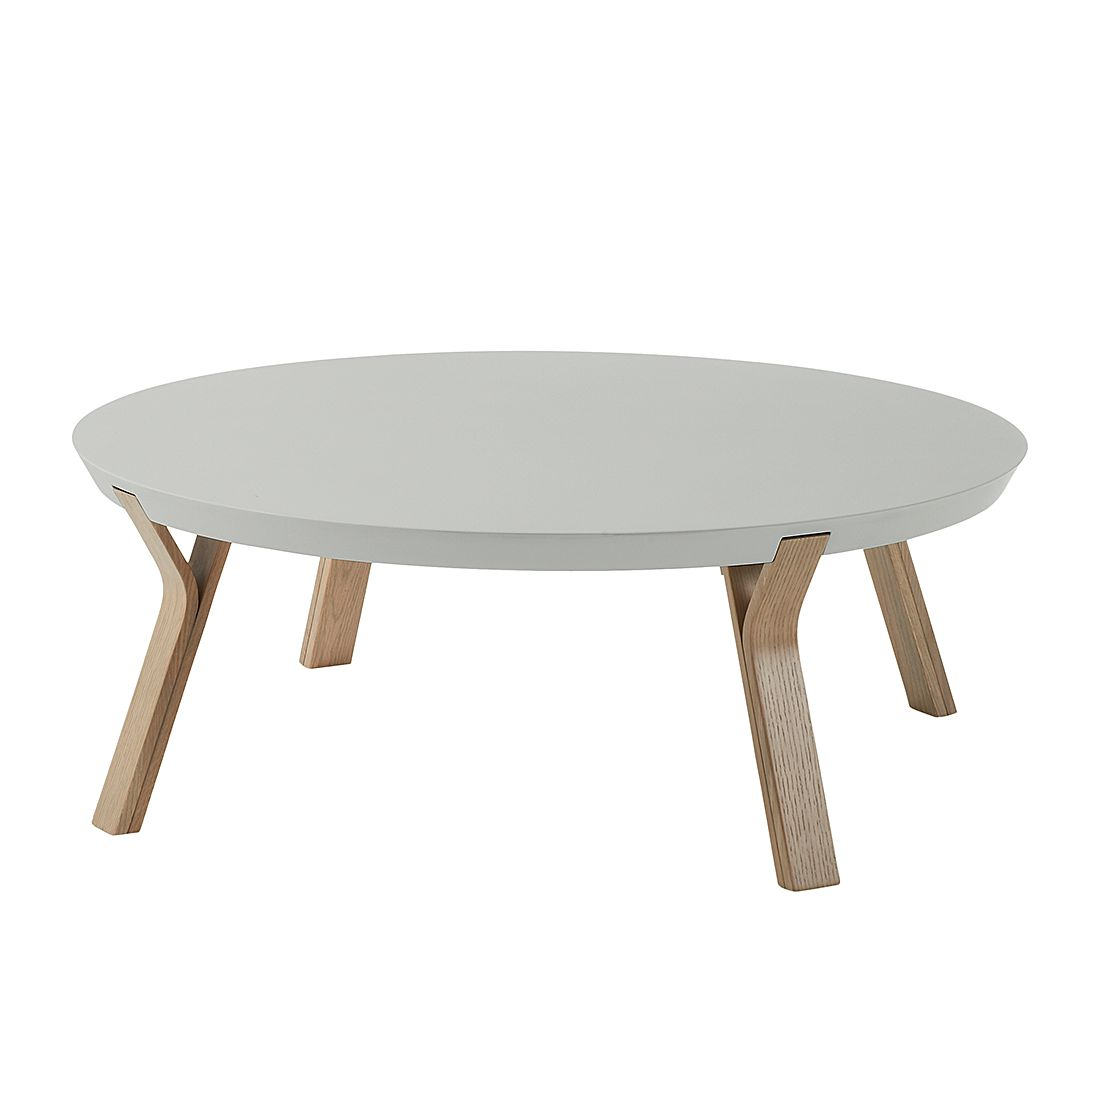 Table basse Collone - Gris clair mat / Chêne, Norrwood